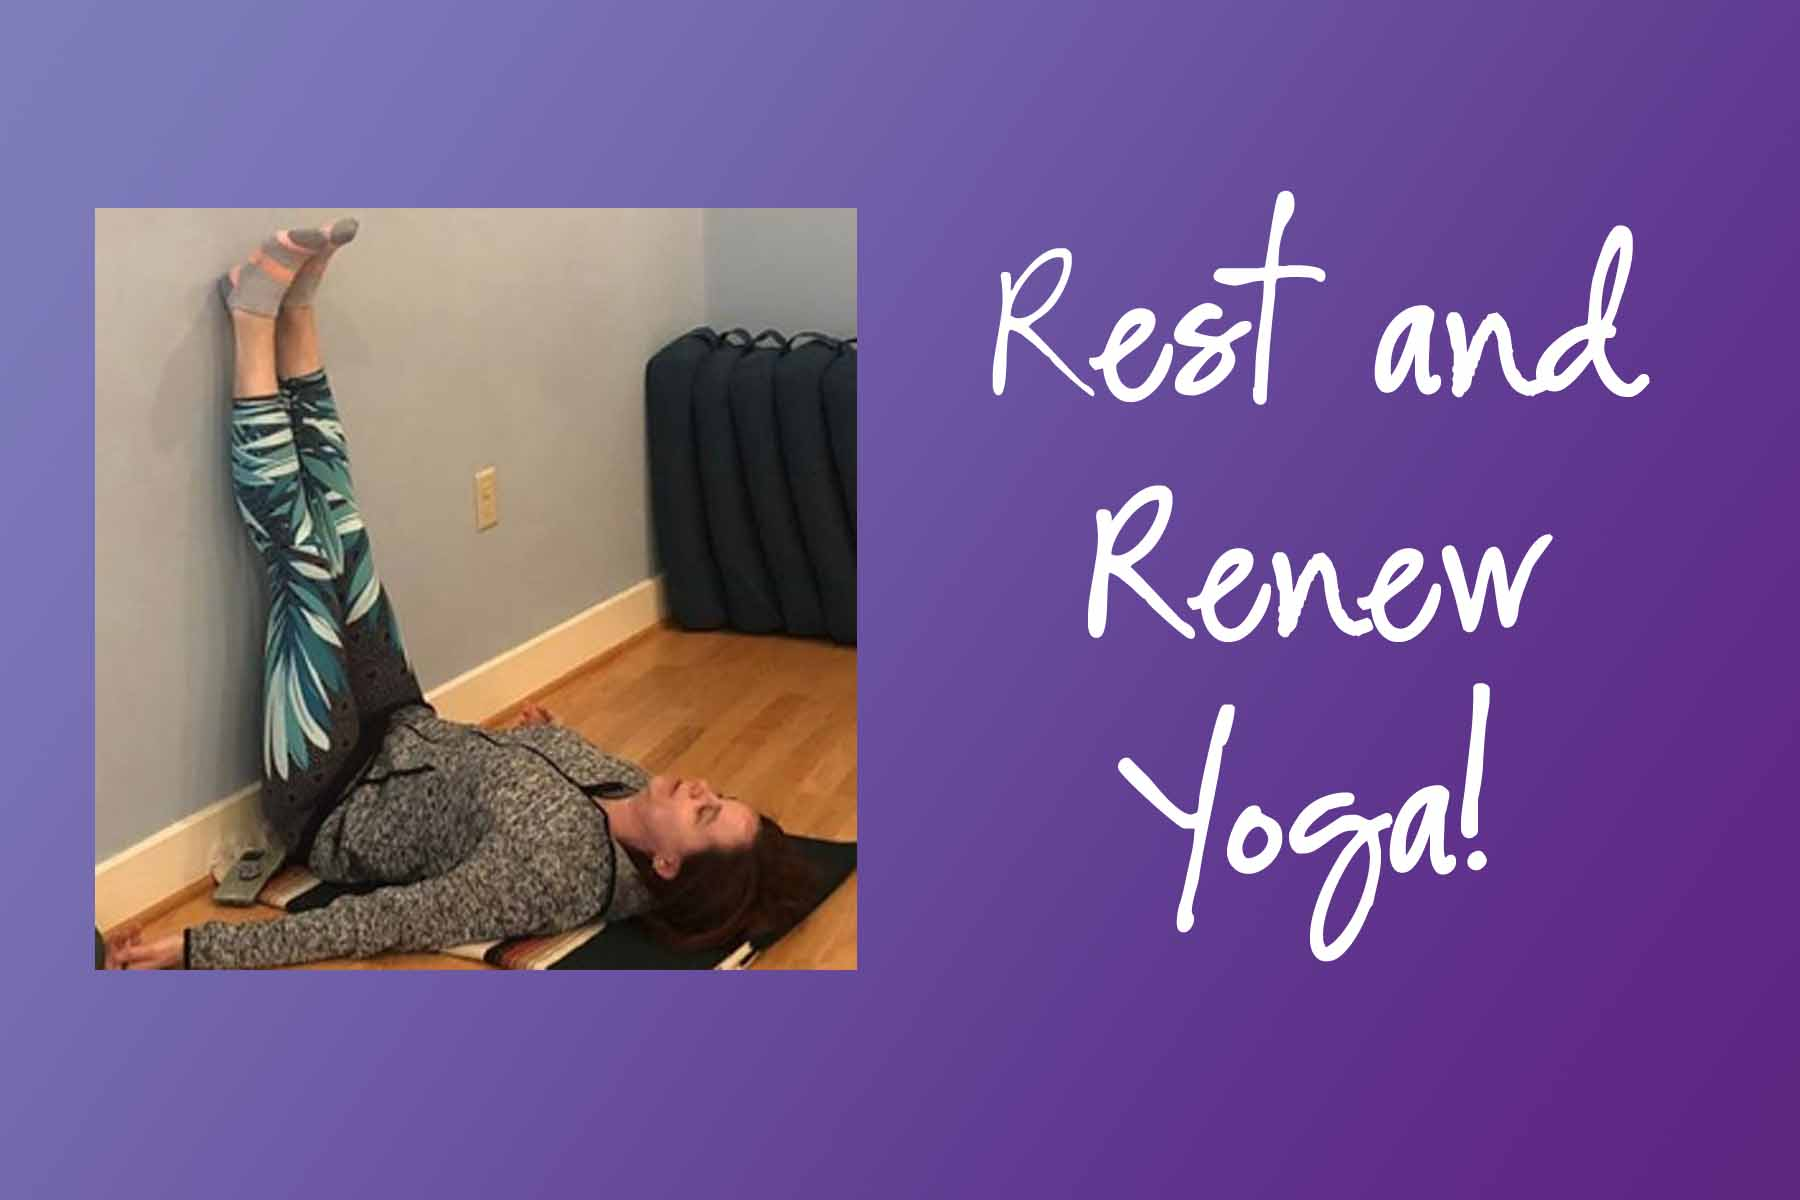 Rest and Renew Yoga